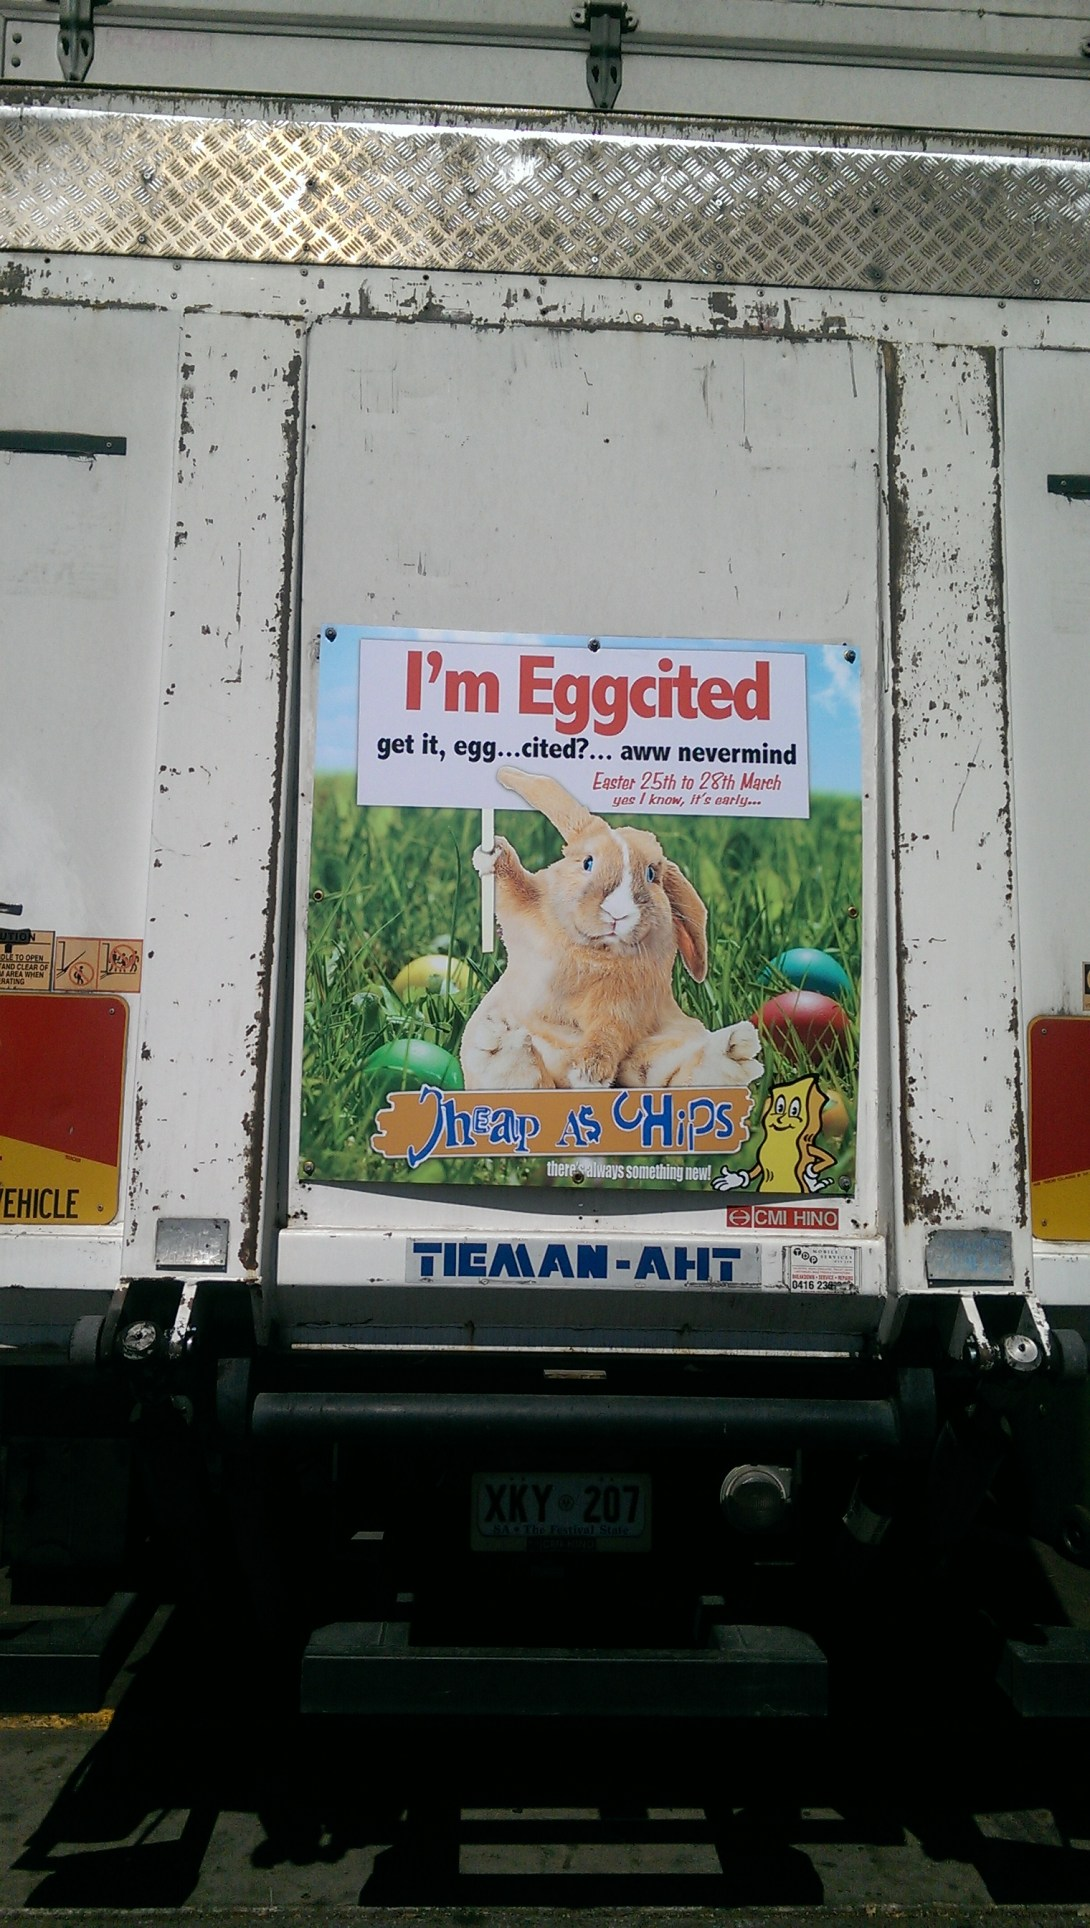 I'm eggcited Cheap as Chips advertisement #australia #kitsch be kitschig blog #Ostern #easter